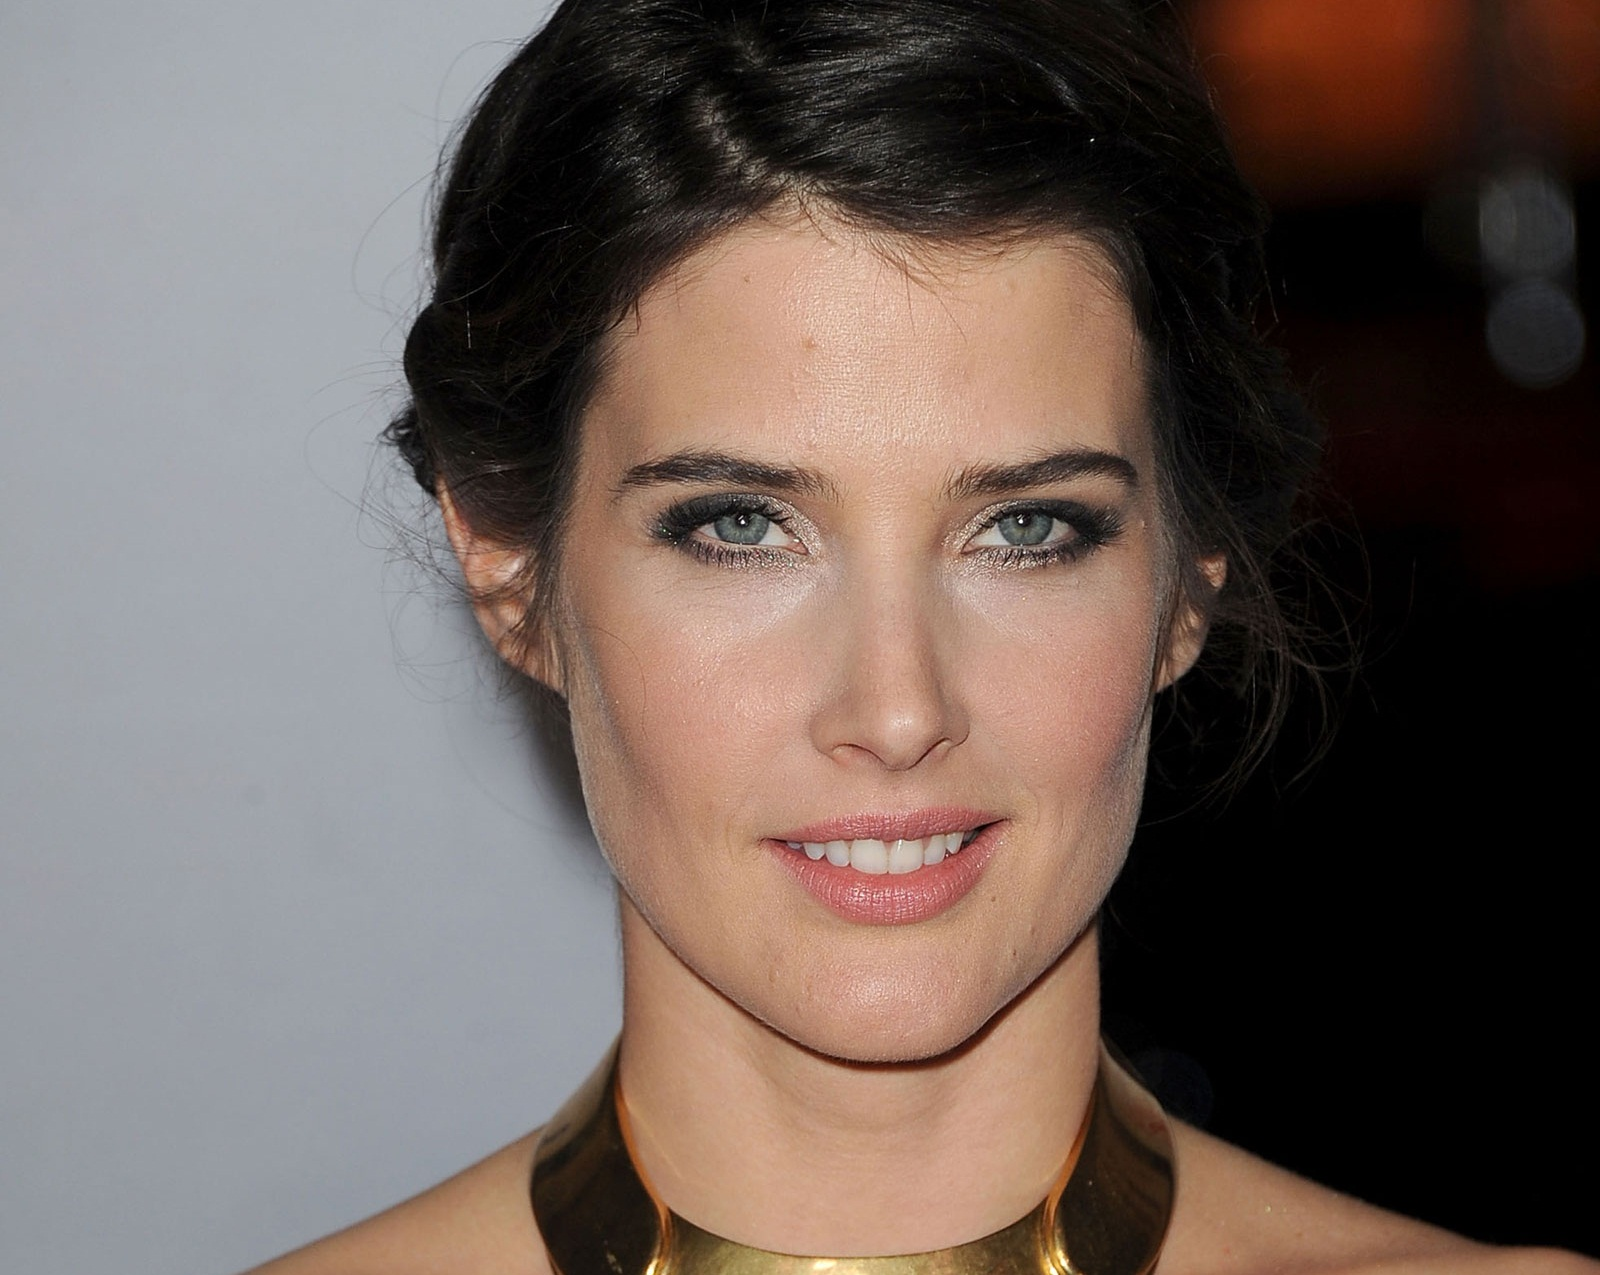 cobie smulders husbandcobie smulders фото, cobie smulders 2016, cobie smulders кинопоиск, cobie smulders 2017, cobie smulders инстаграм, cobie smulders wiki, cobie smulders gif hunt, cobie smulders husband, cobie smulders insta, cobie smulders maxim hd, cobie smulders wikipedia, cobie smulders fansite, cobie smulders site, cobie smulders рак, cobie smulders imdb, cobie smulders photoshoots, cobie smulders son, cobie smulders interview, cobie smulders and josh radnor together, cobie smulders gallery